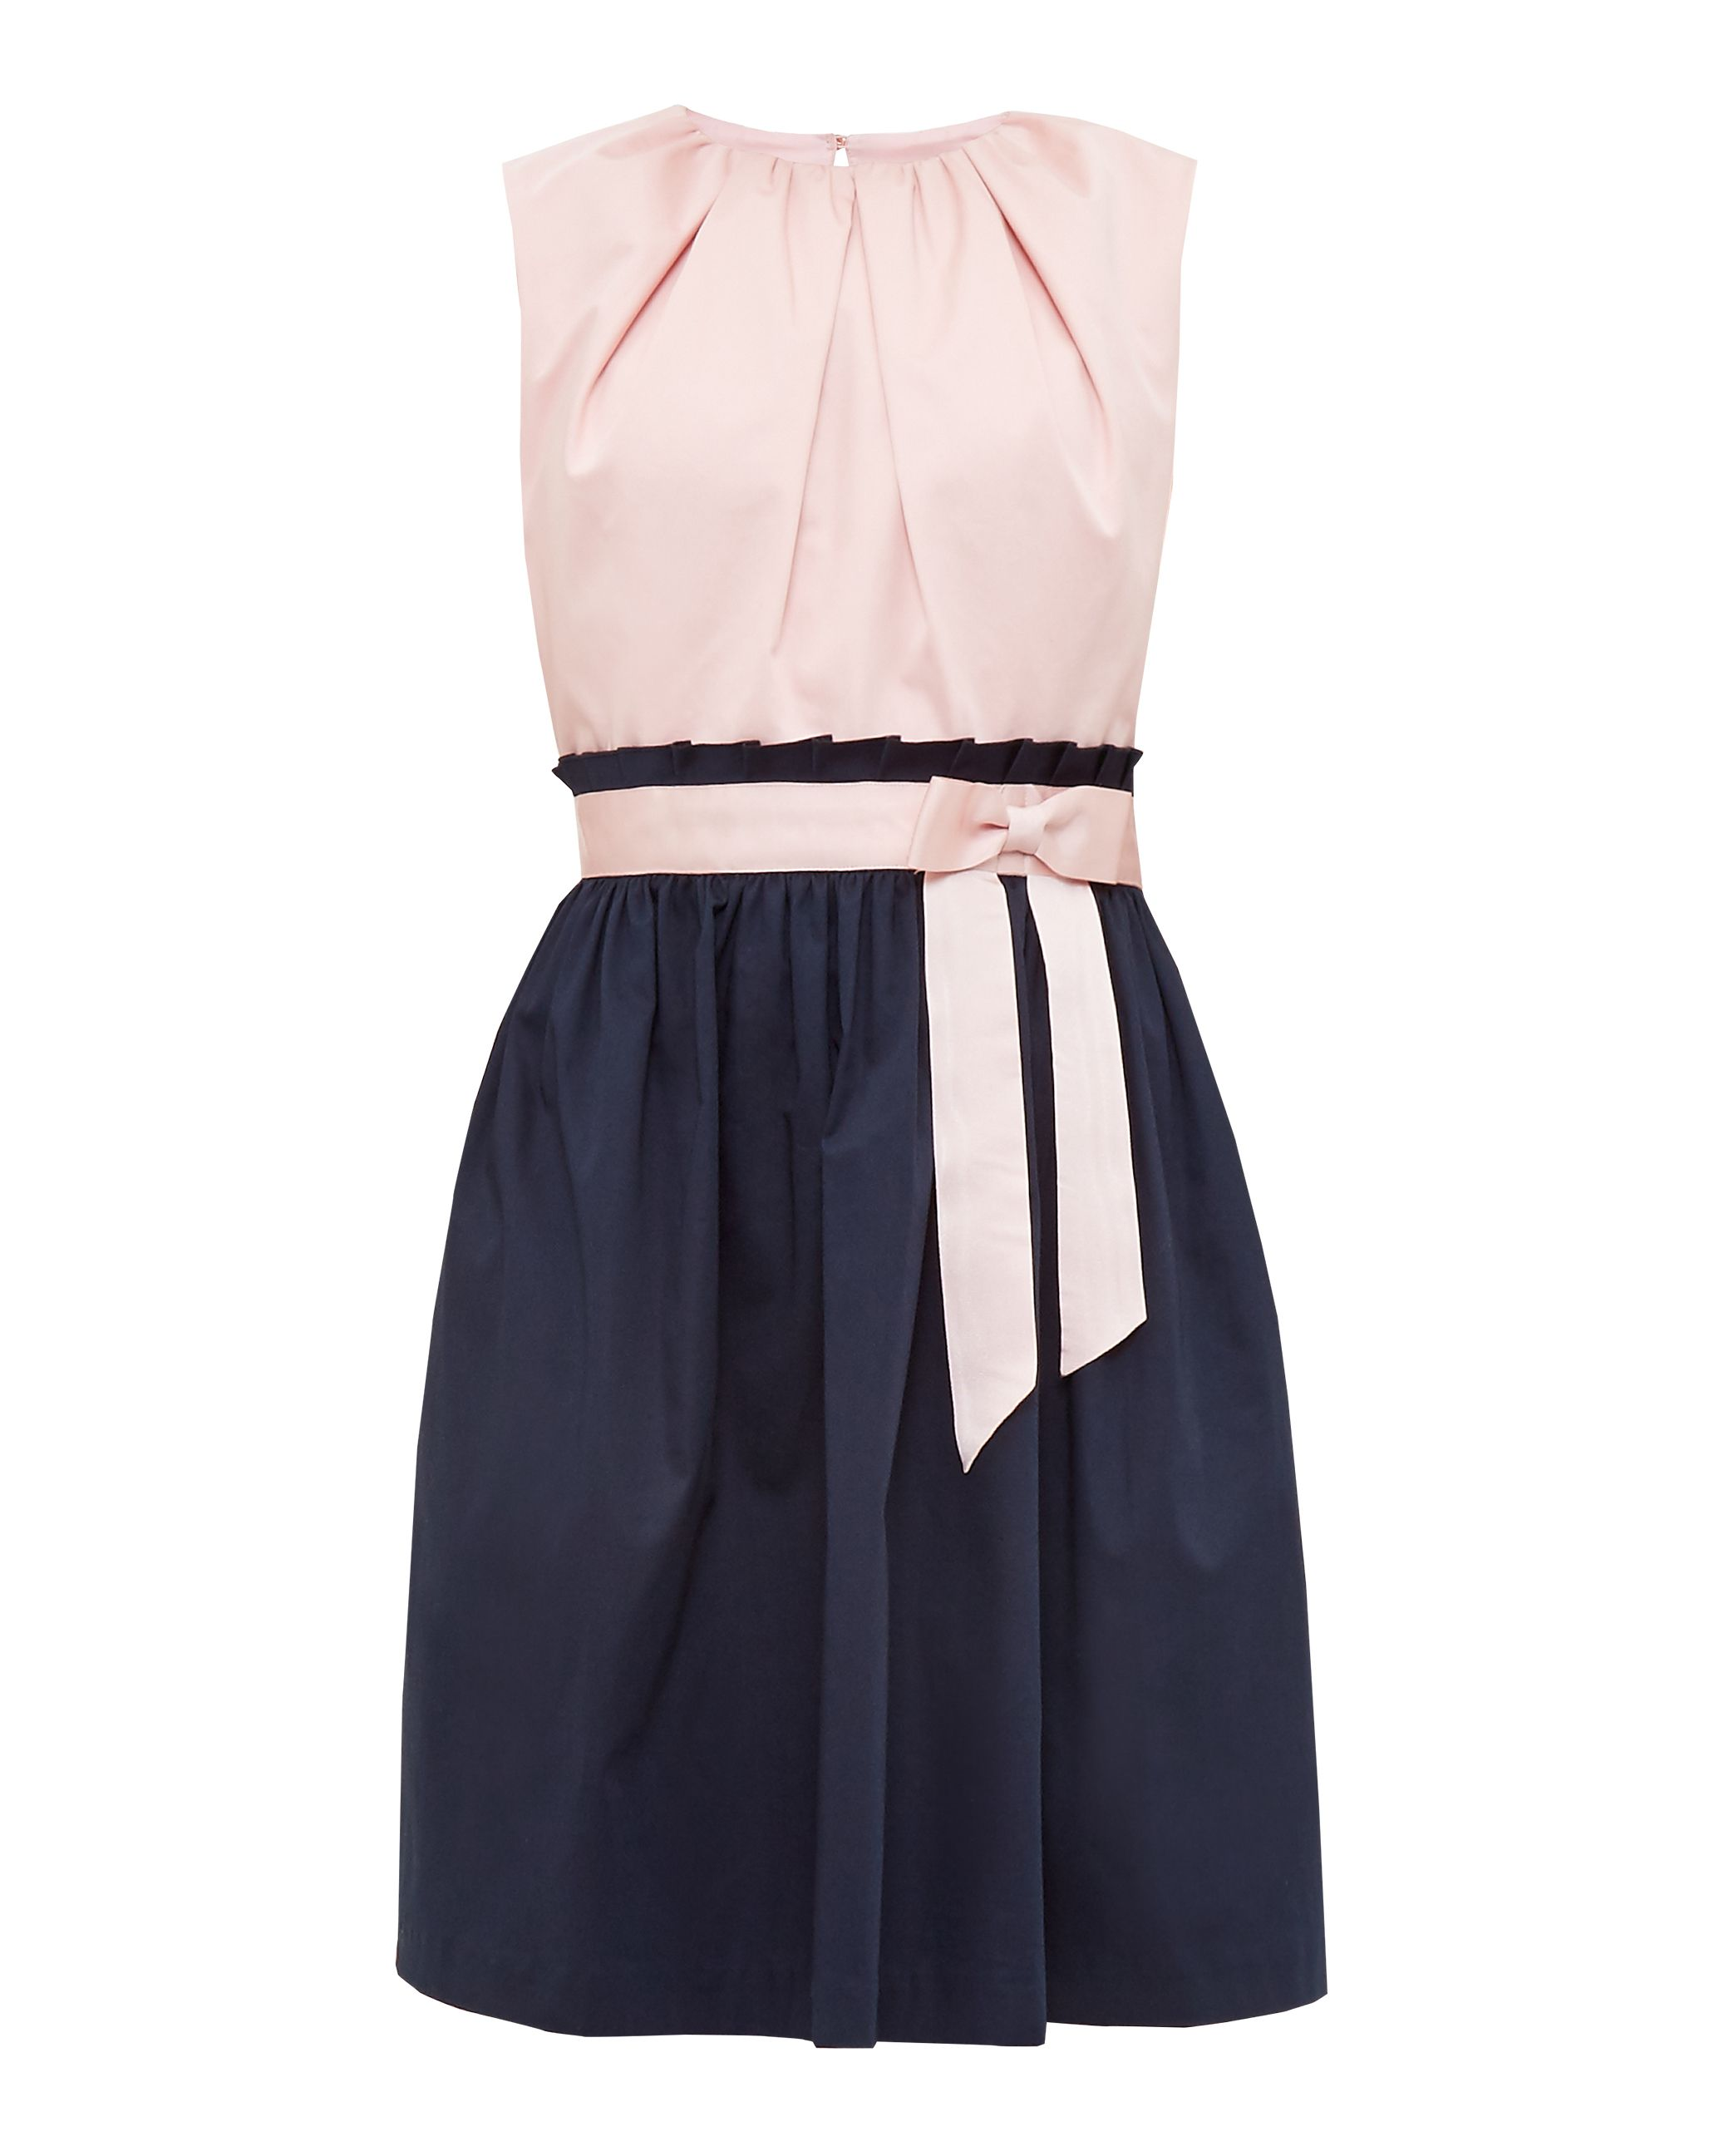 Ted Baker Alyy Frilled Waist Tie Cotton-Blend Dress, Pink